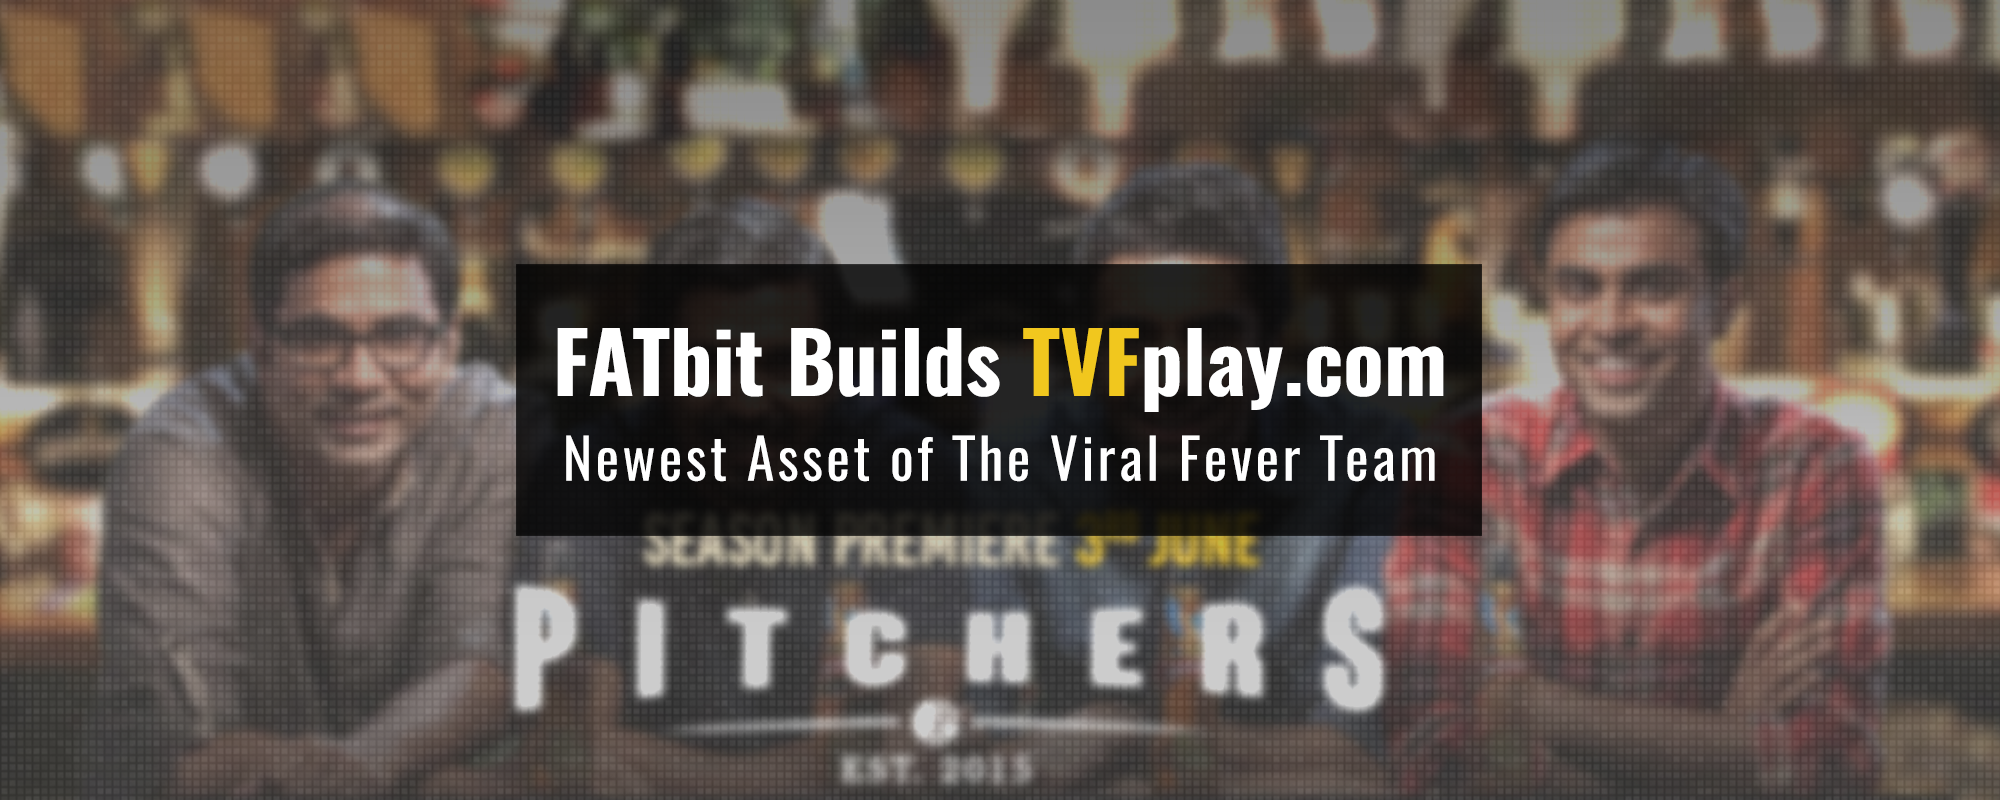 TVF Play Case Study: One Place to Live and Relive all The Viral Fever Moments